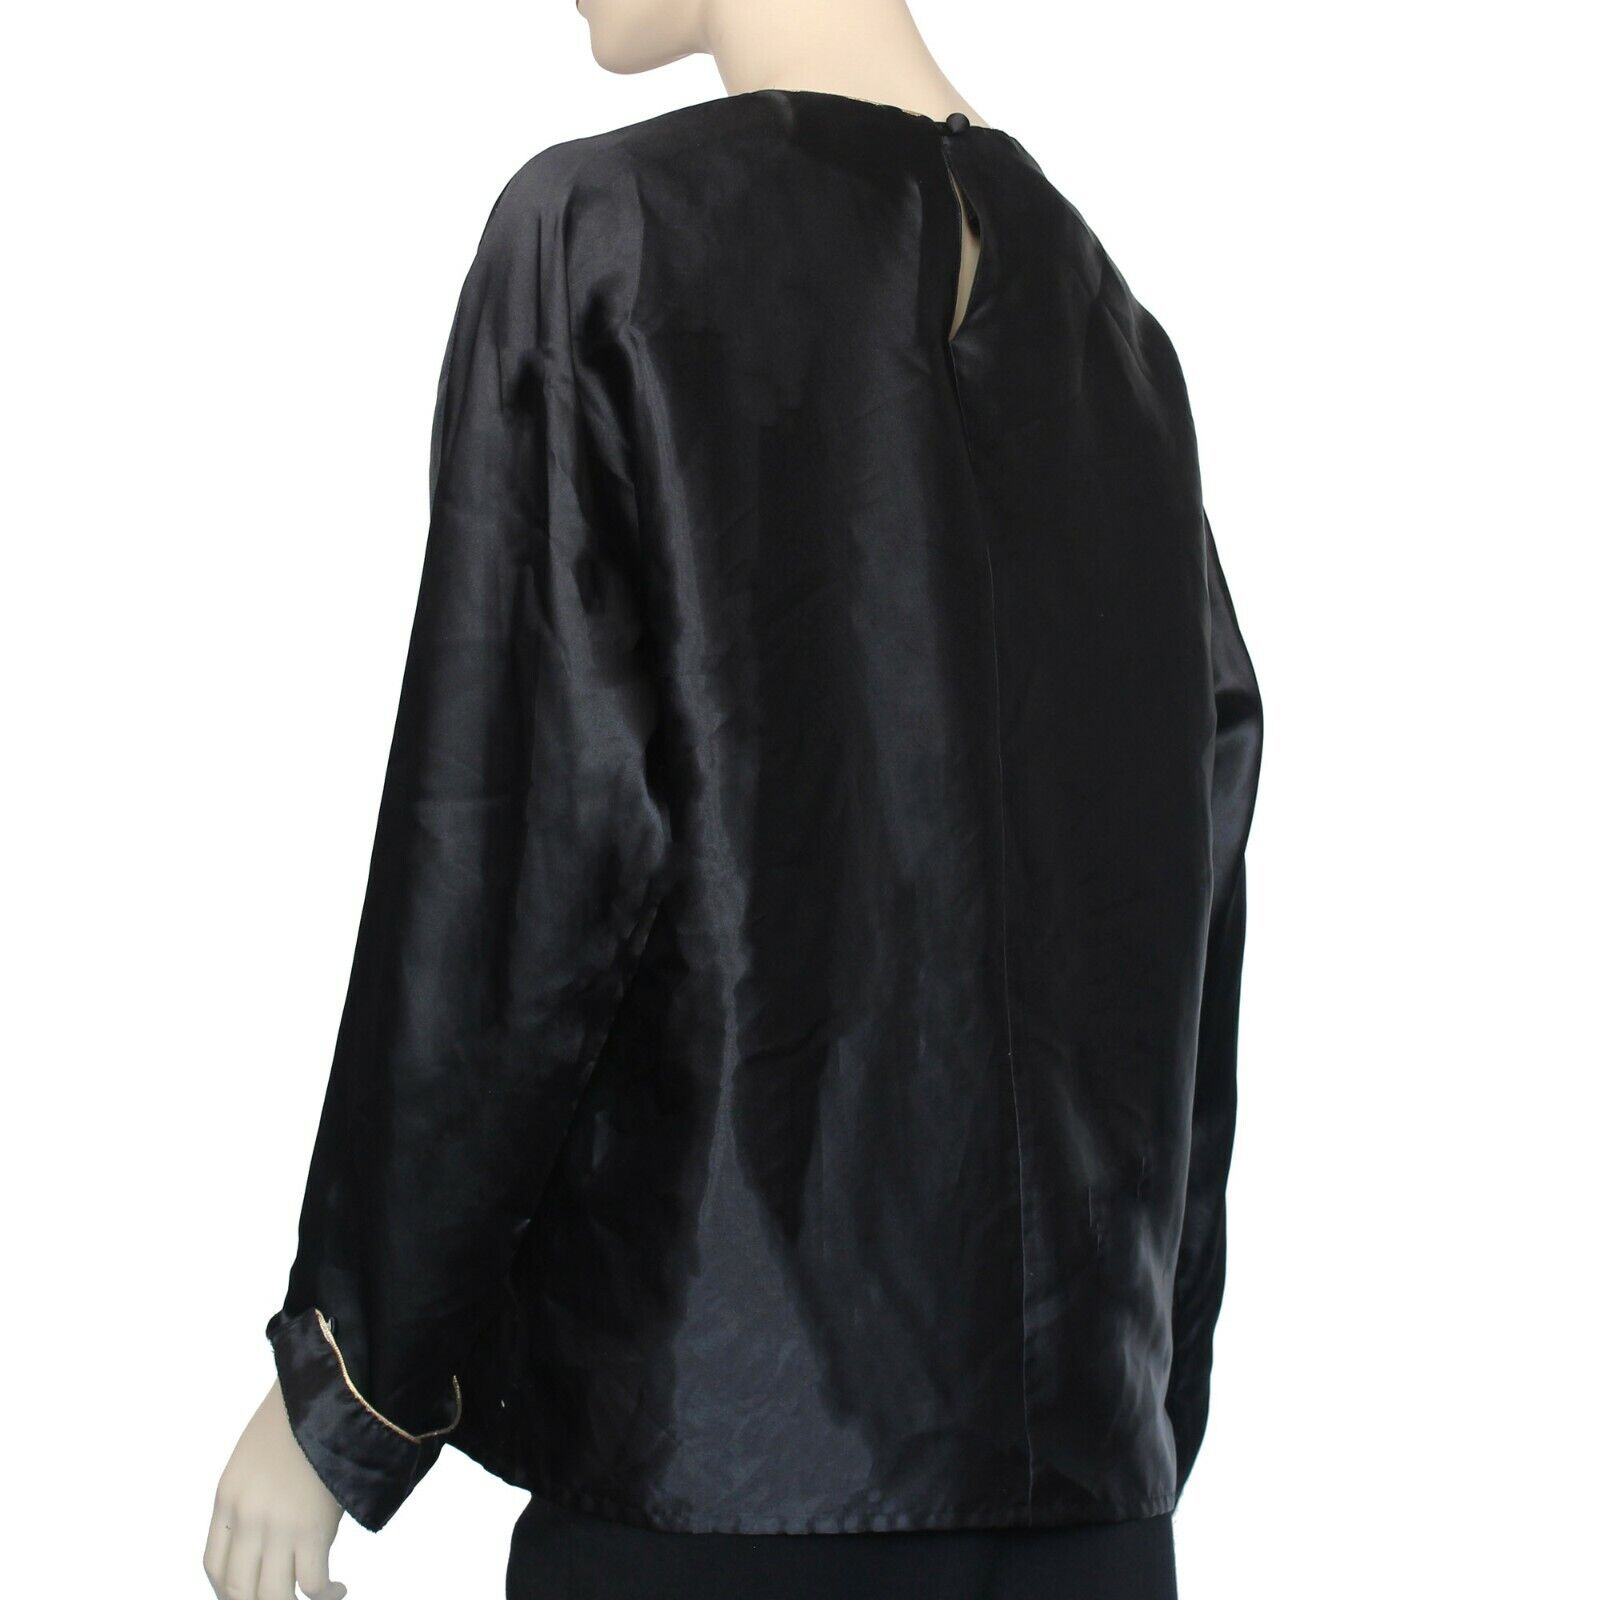 Vintage 1990's Laura & Jayne Collection Blouse Si… - image 4